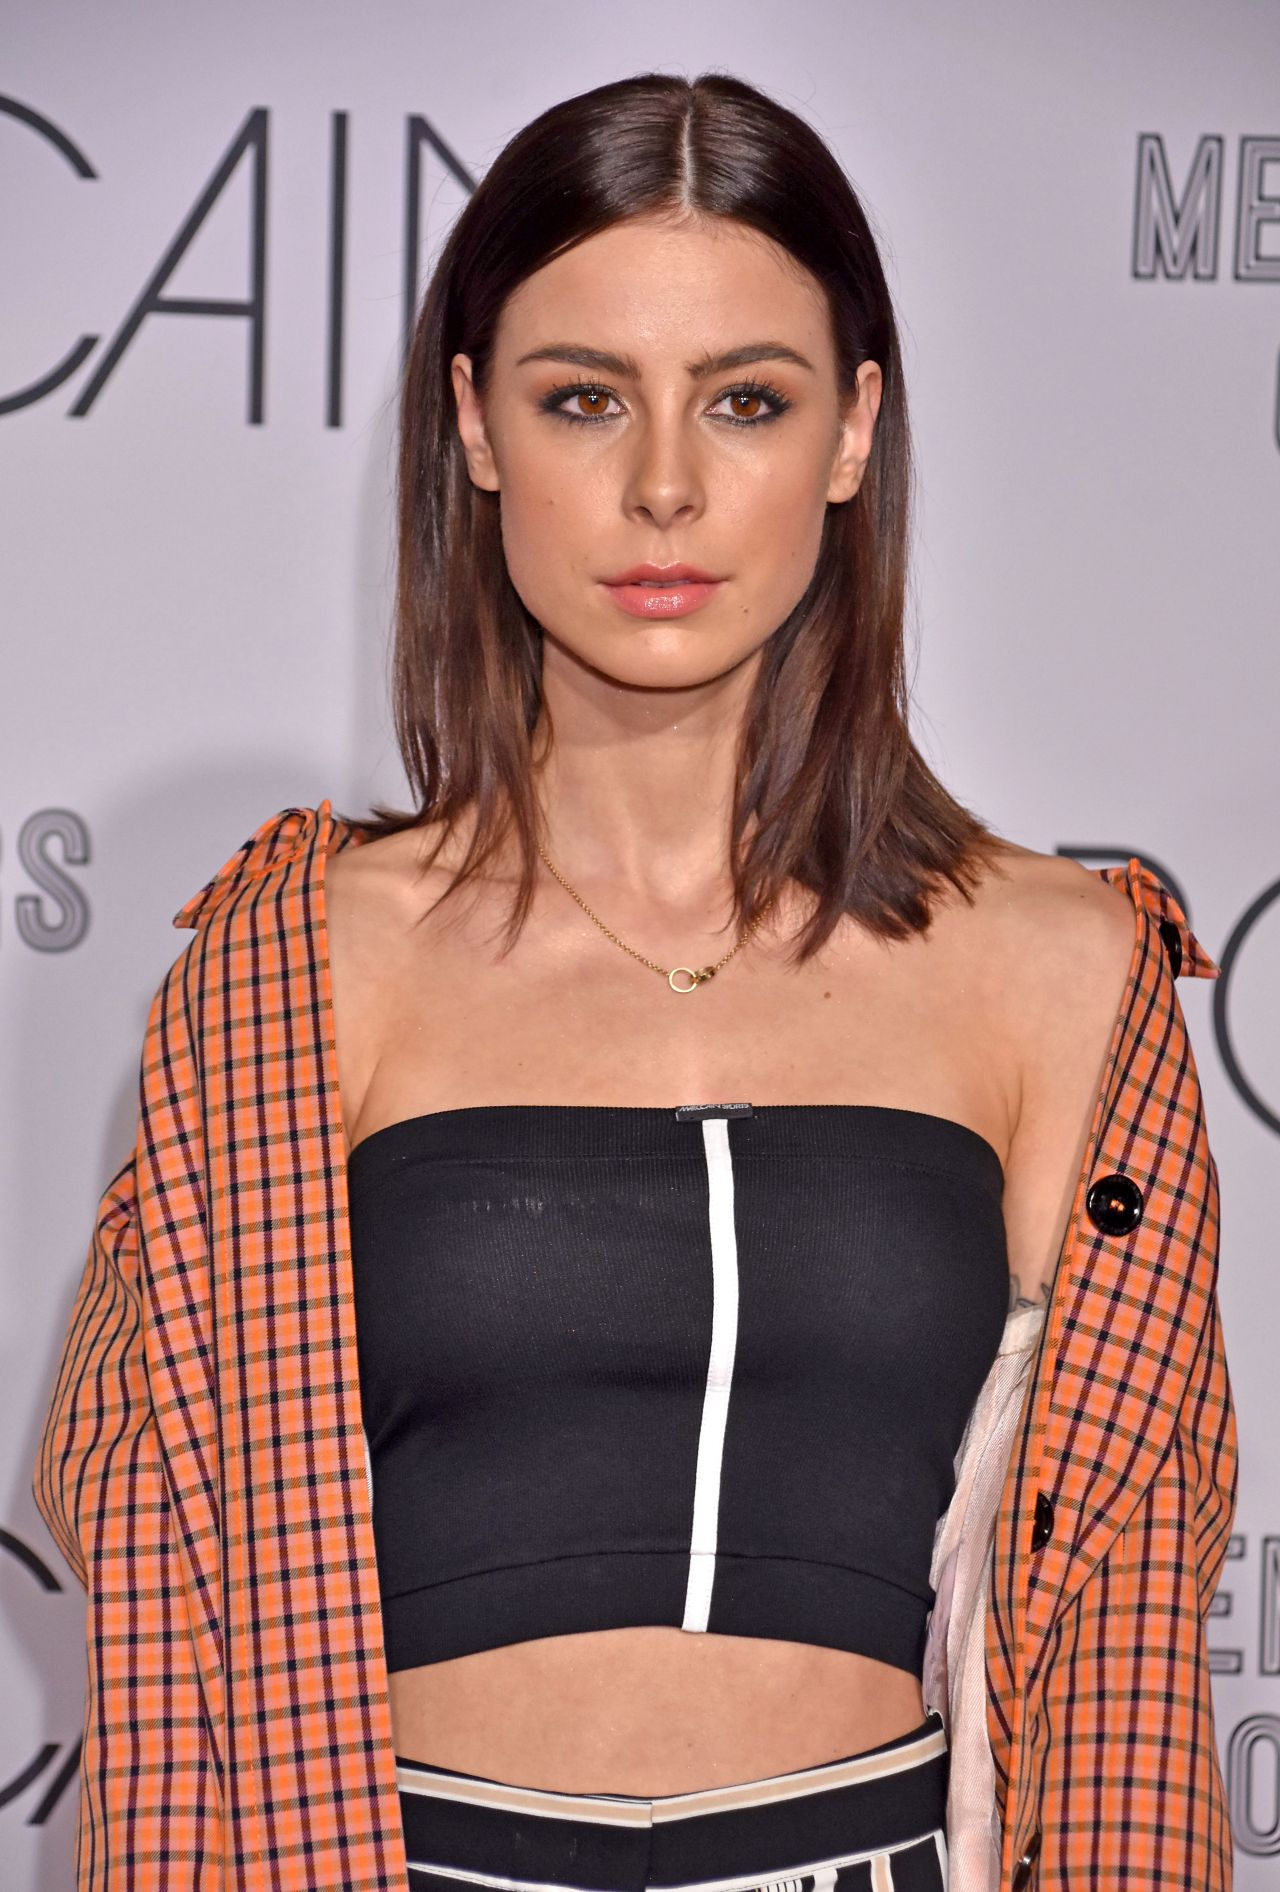 lena meyer landrut marc cain fashion show in berlin 01 16 2018. Black Bedroom Furniture Sets. Home Design Ideas